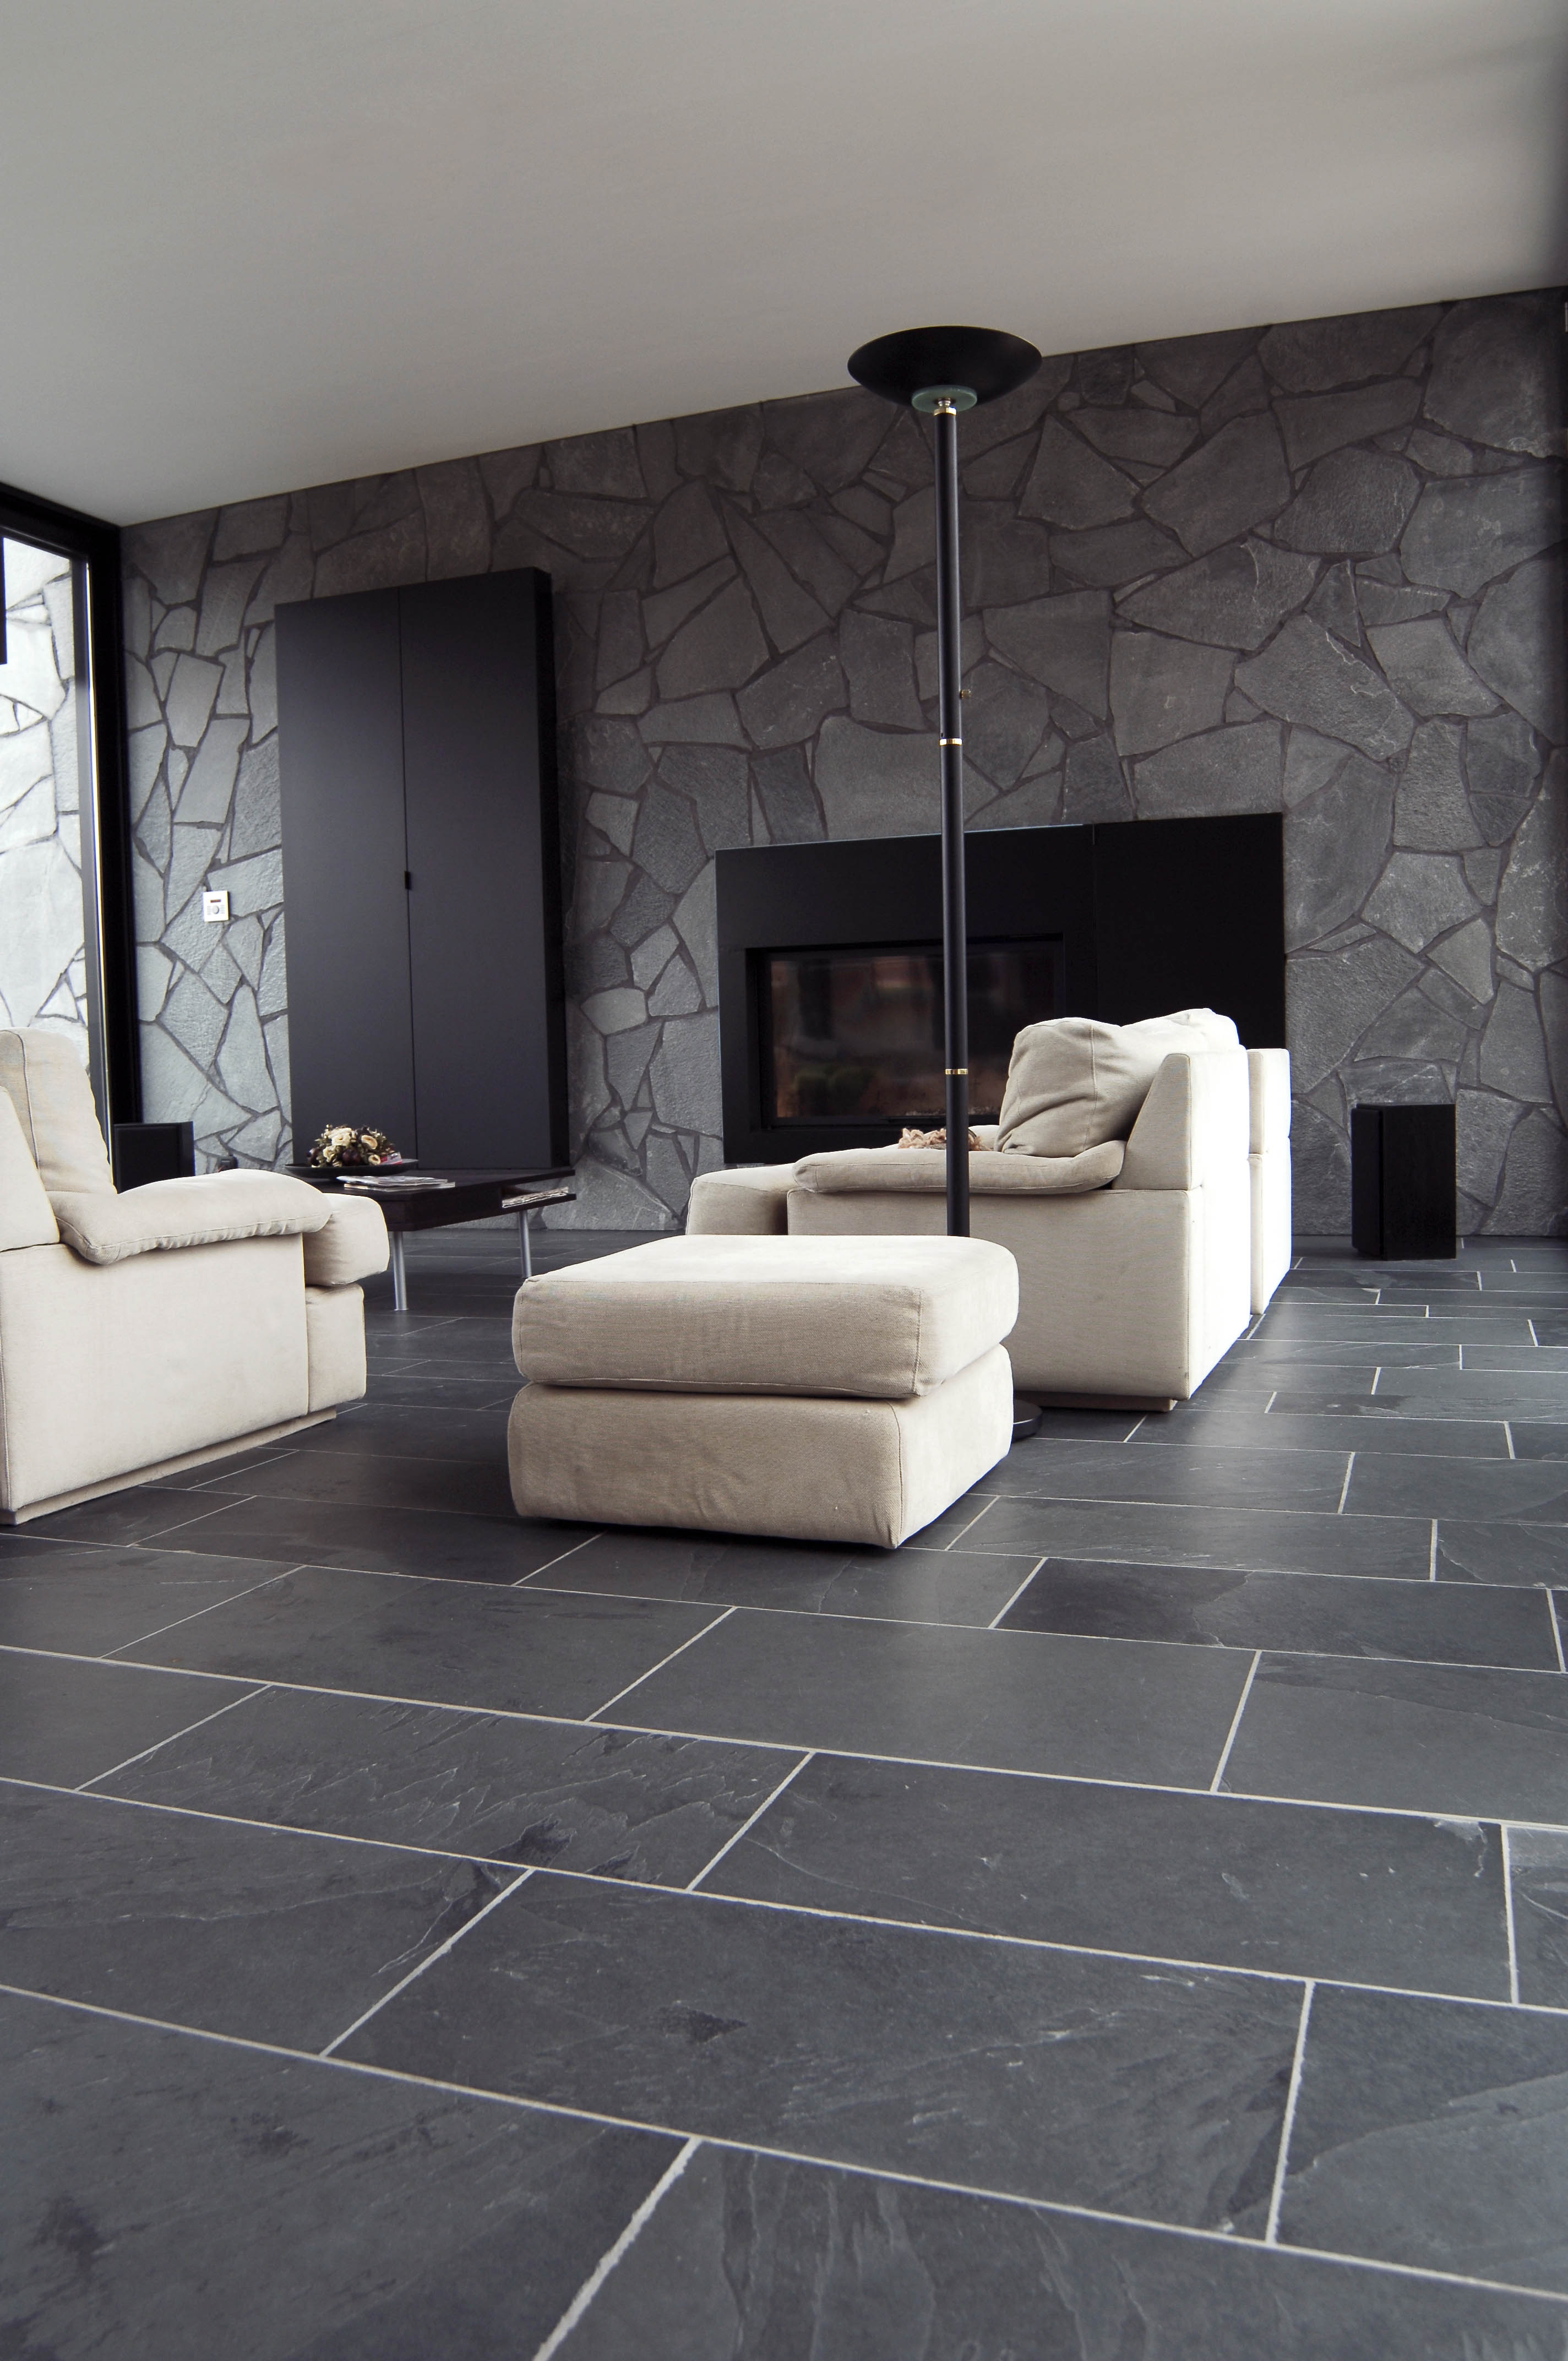 South american graphite slate tiles for sale at rms traders south american graphite slate dailygadgetfo Choice Image